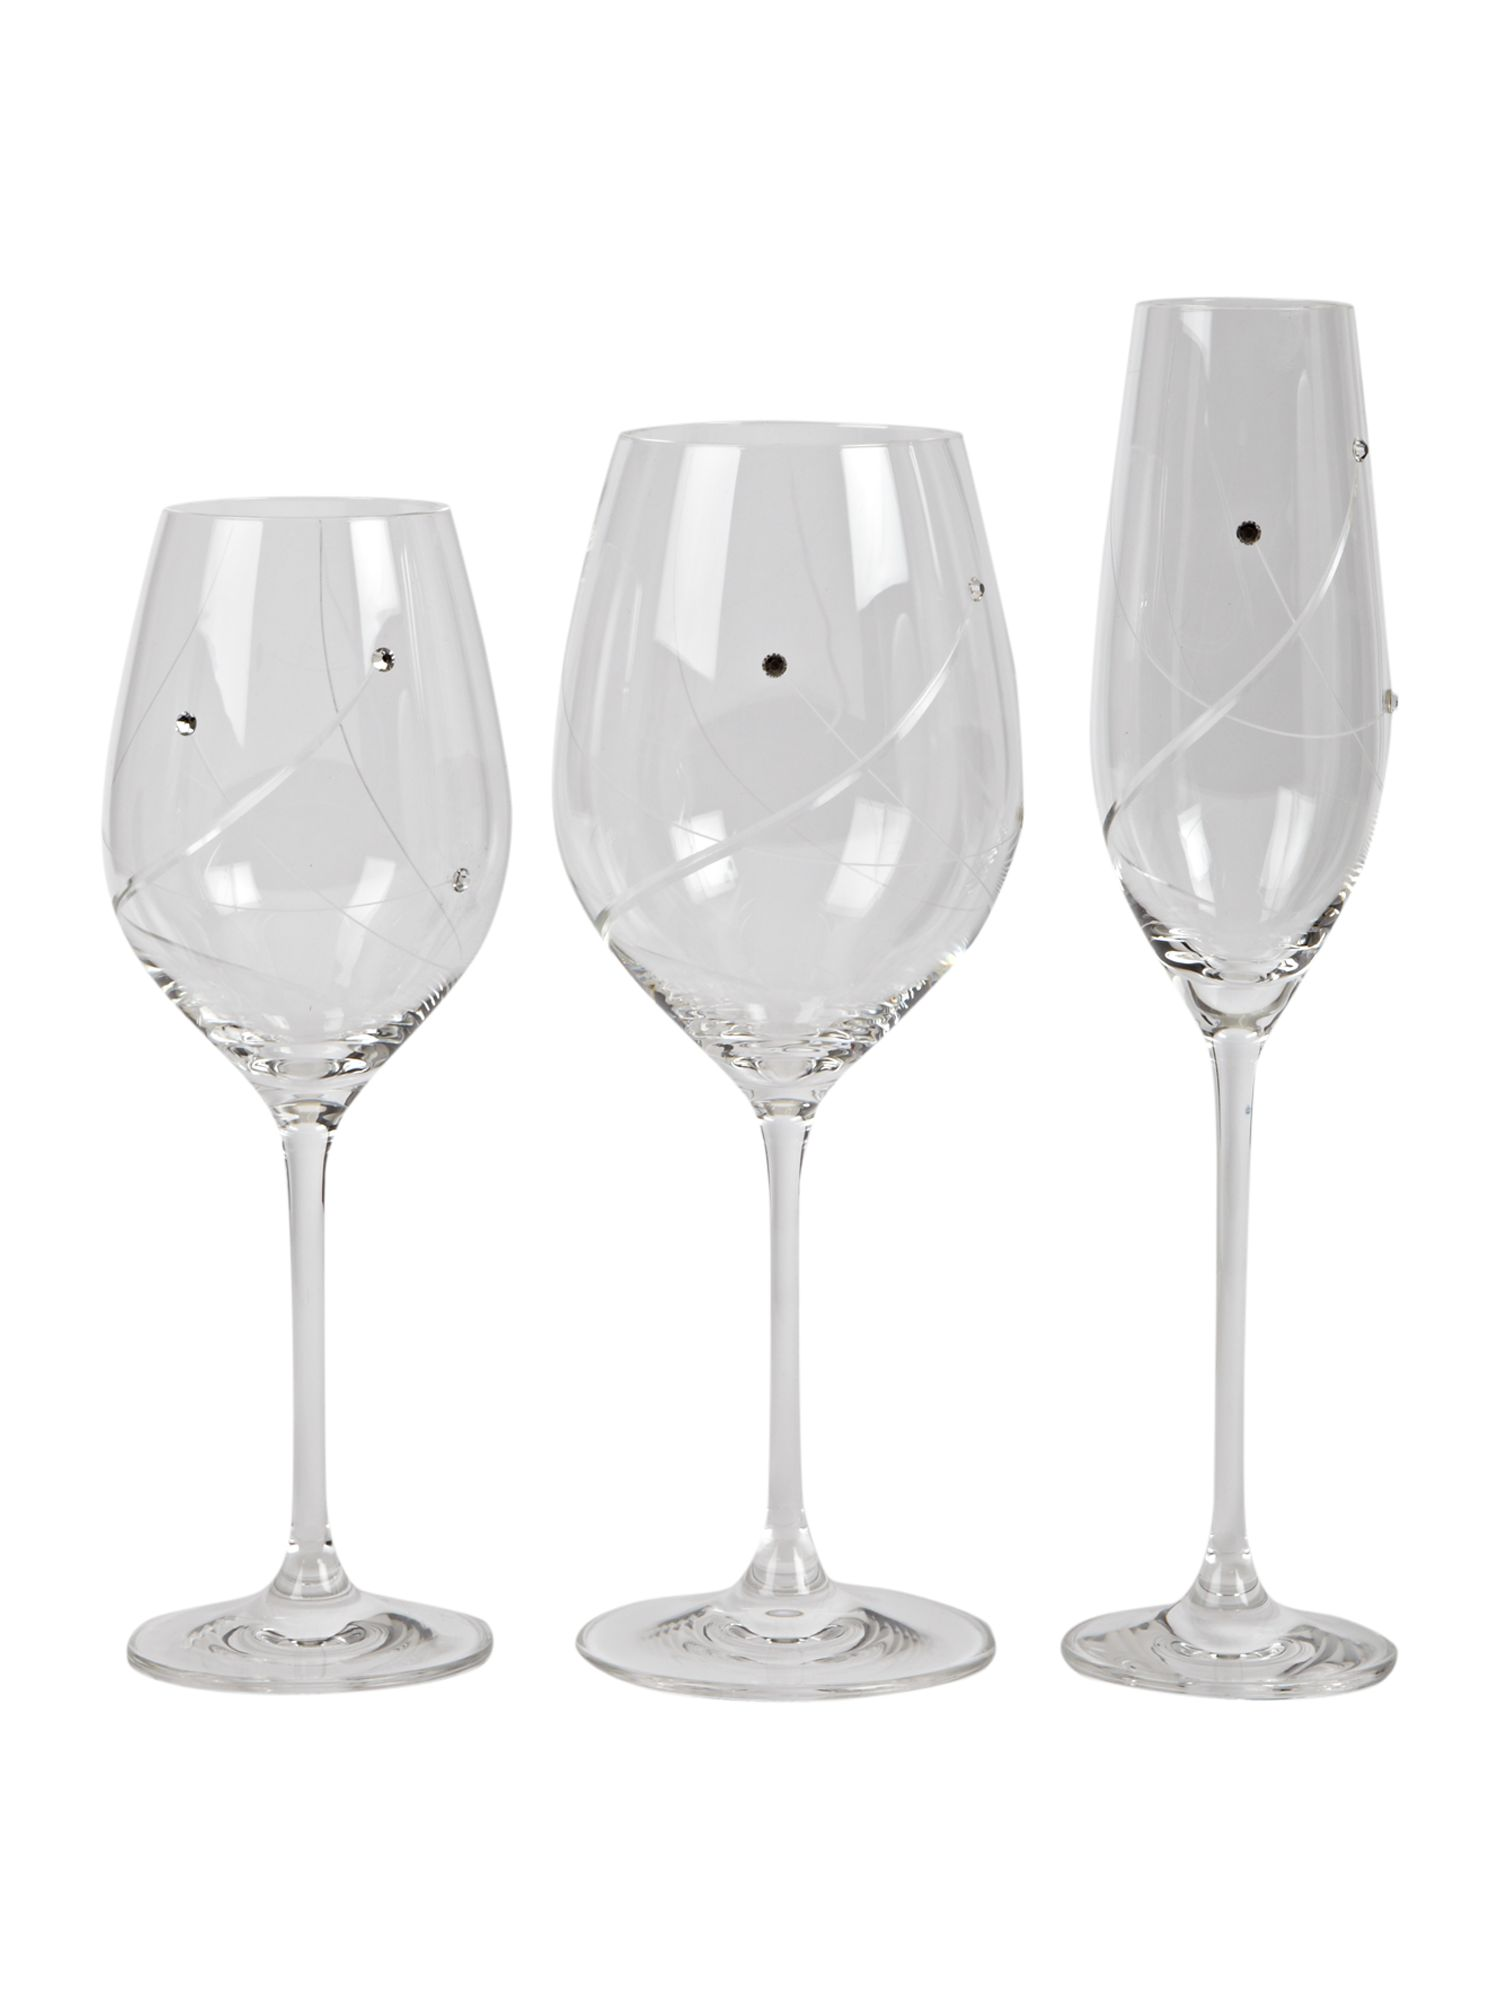 Angelina Swarovski elements glassware